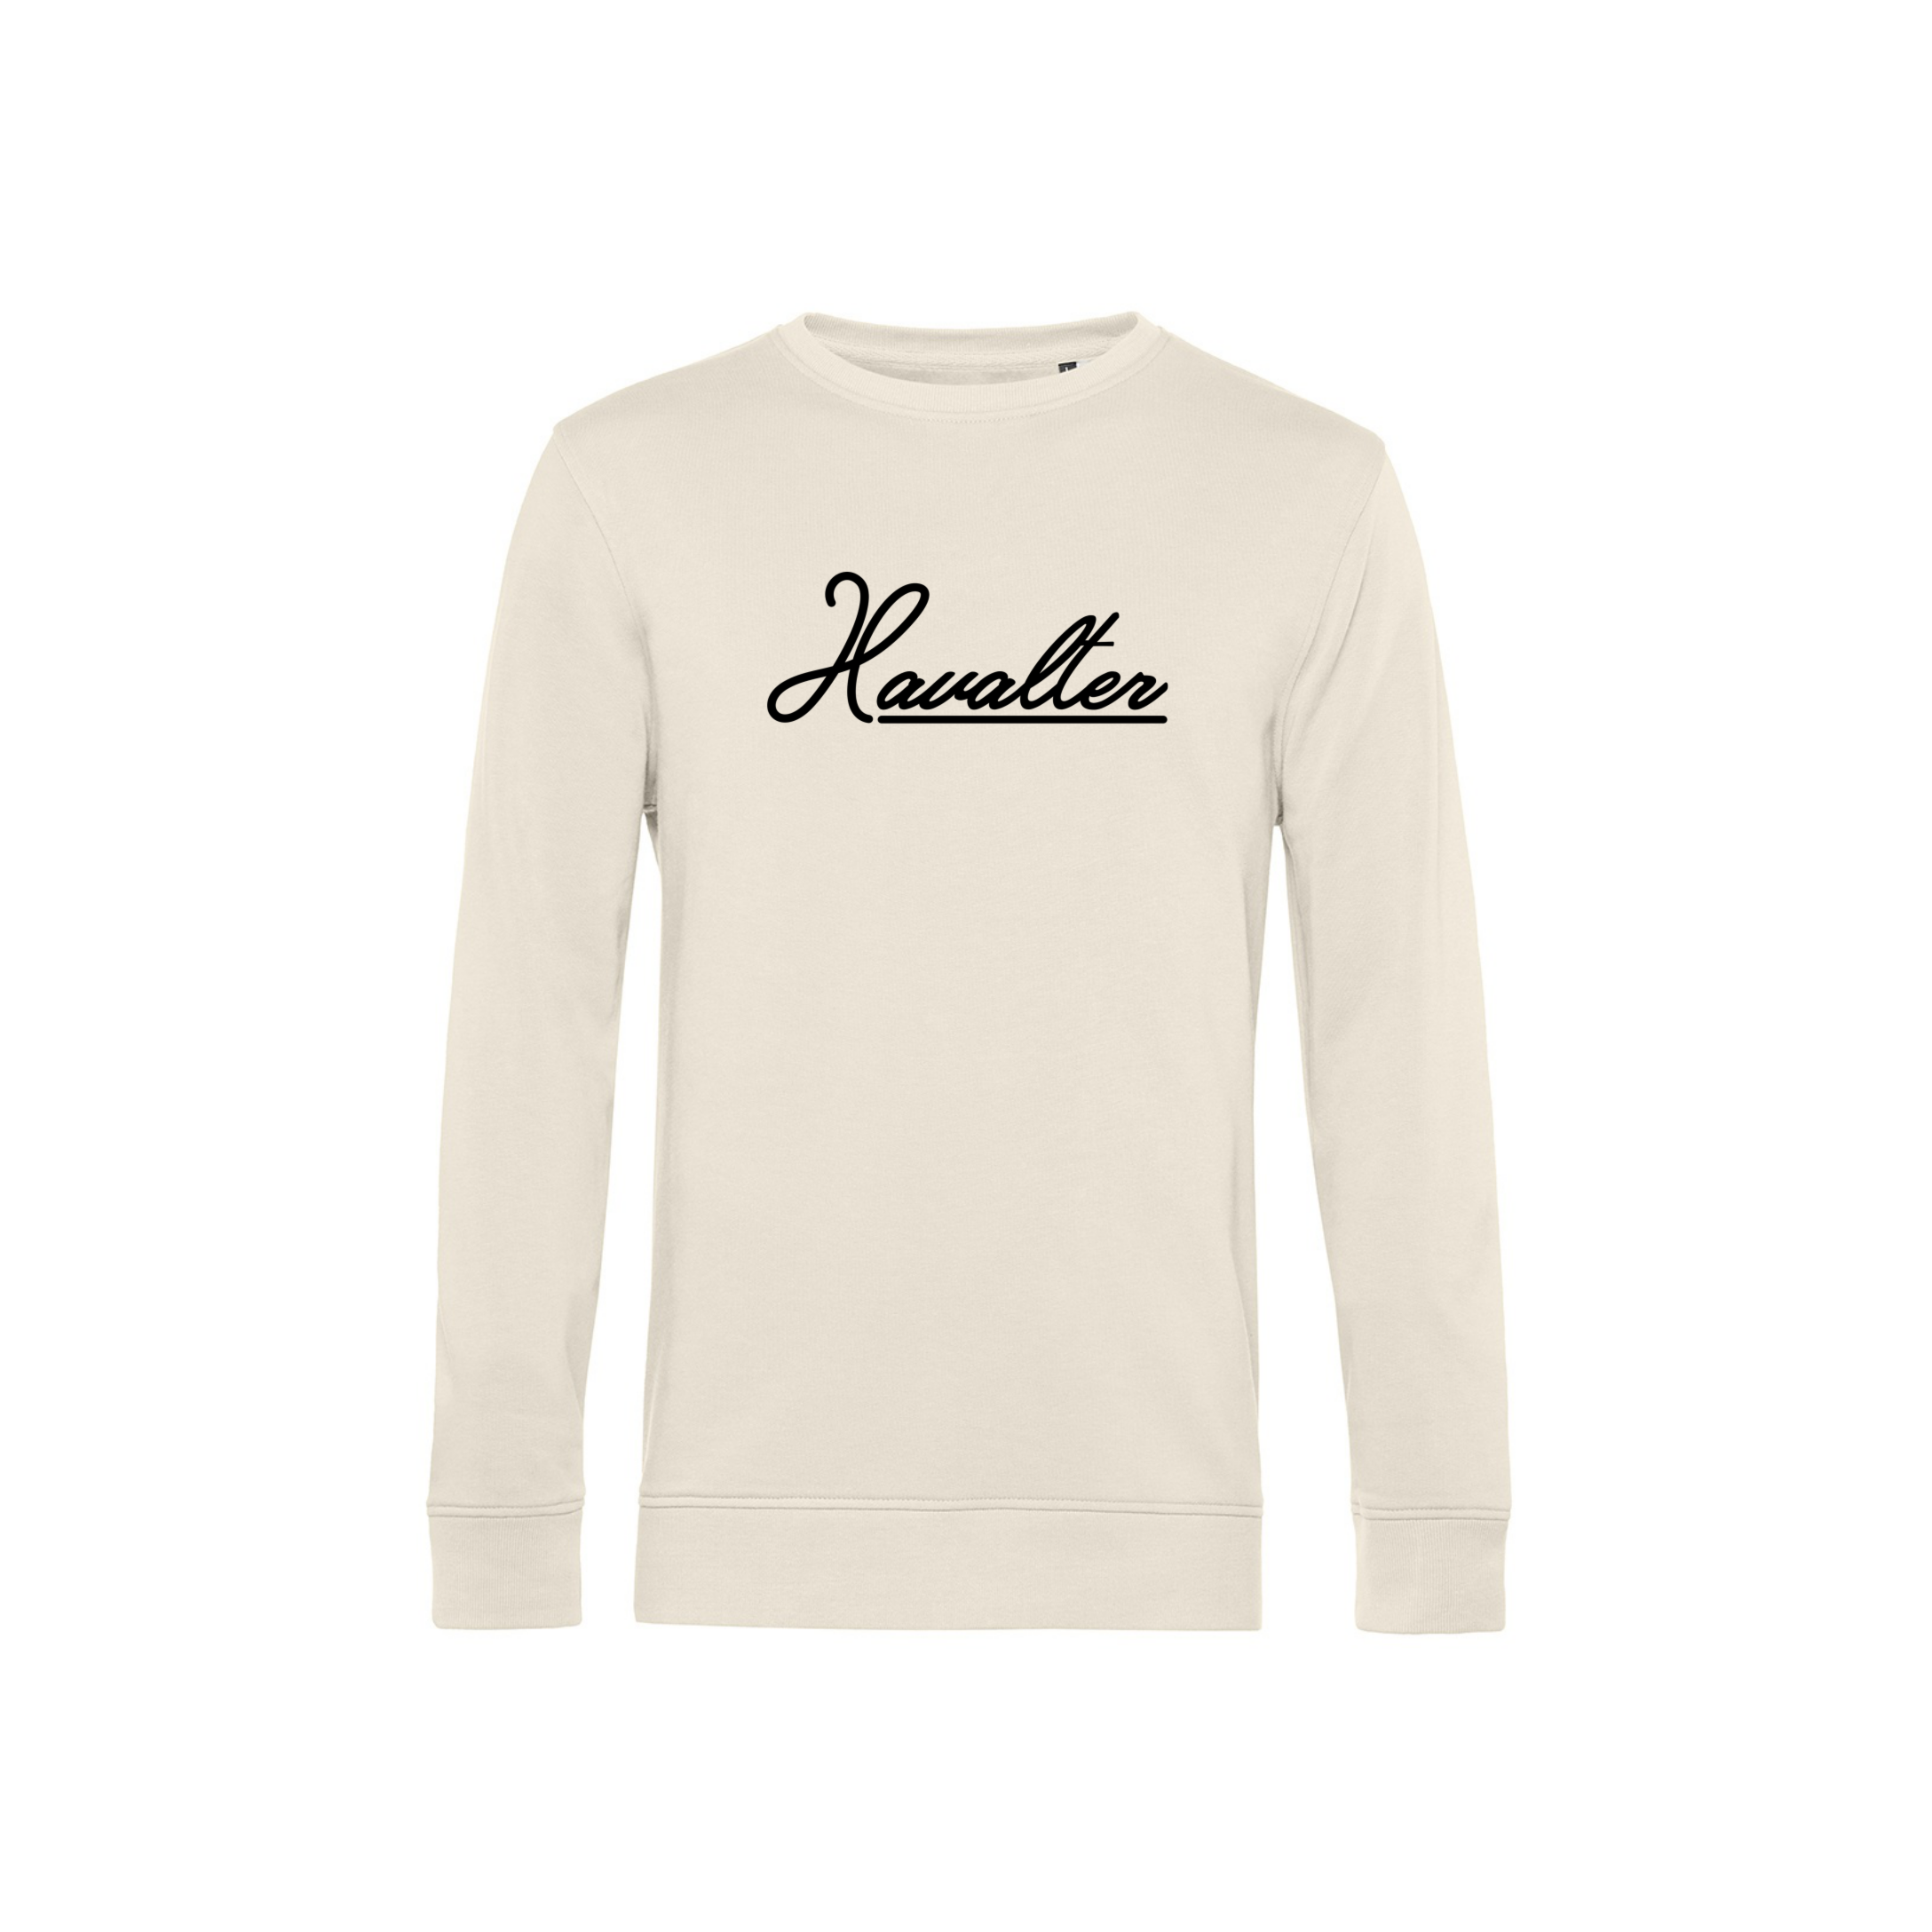 Havalter Sweater Cream Basic Logo, Unisex